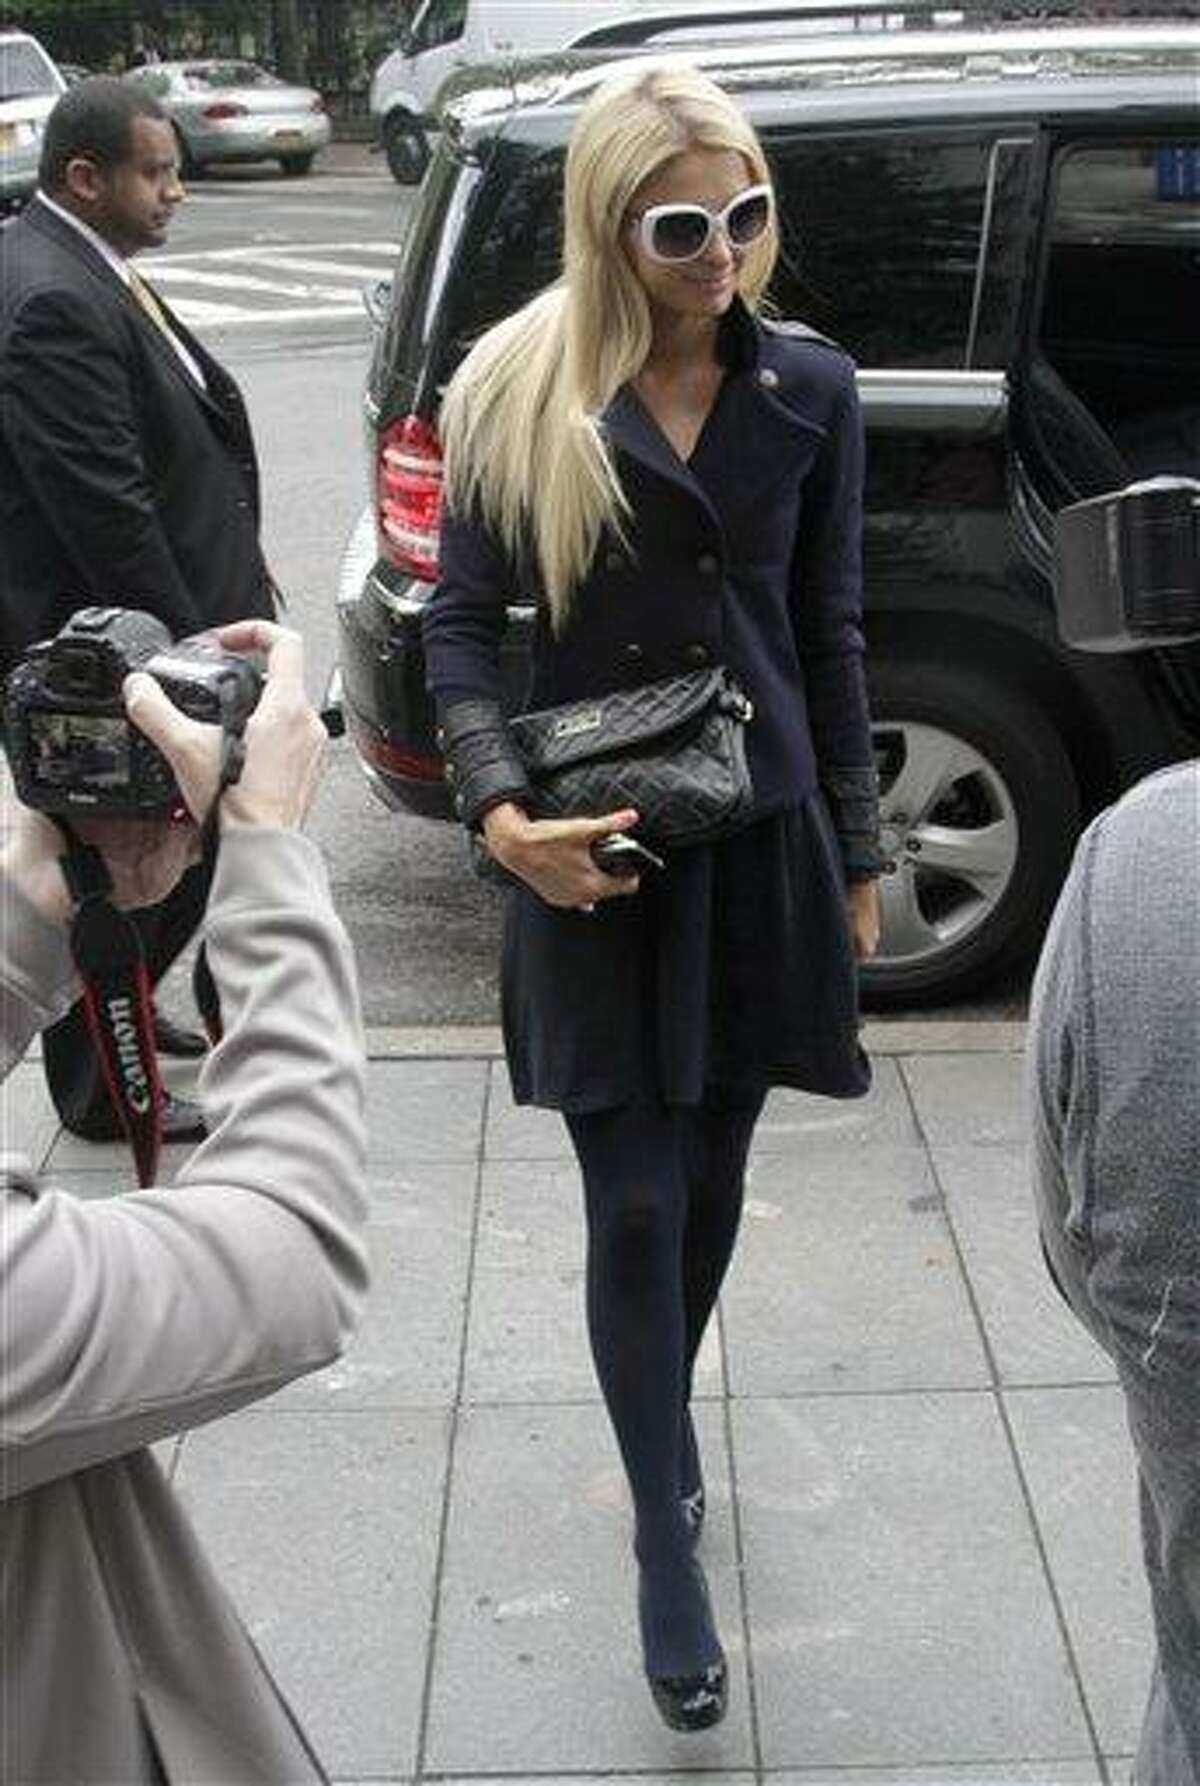 Paris Hilton arrives at federal court in lower Manhattan on Monday, June 4, 2012, in New York. Hilton was in court for settlement talks with an Italian designer that sued her over a licencing agreement to market lingerie under her name. The suit, for unspecified damages, alleges Hilton hurt business by not approving design concepts in a timely manner.